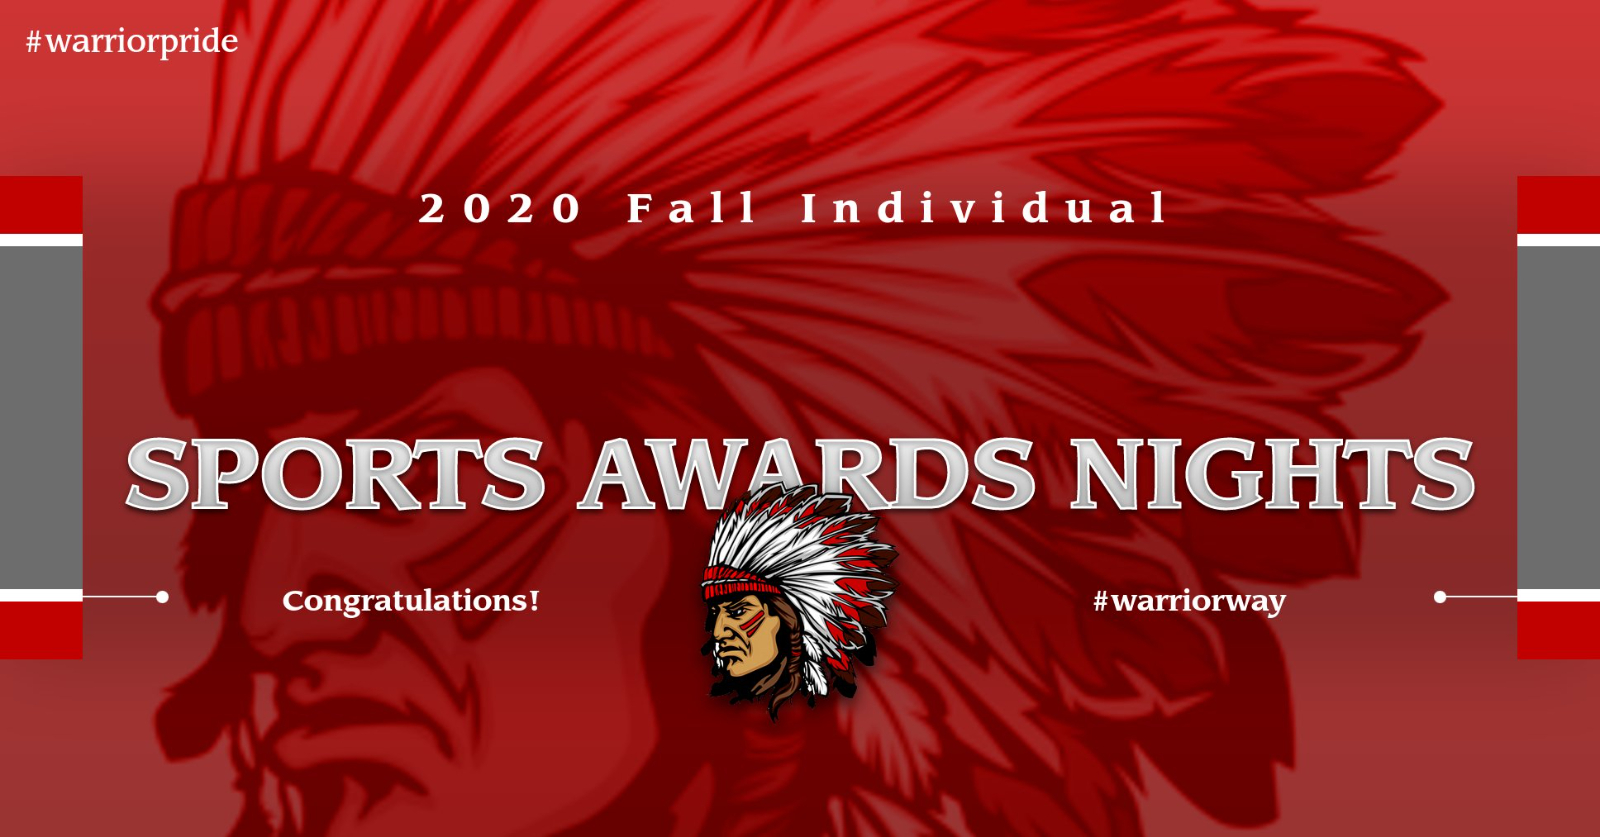 2020 Fall Sports Awards Nights Announced